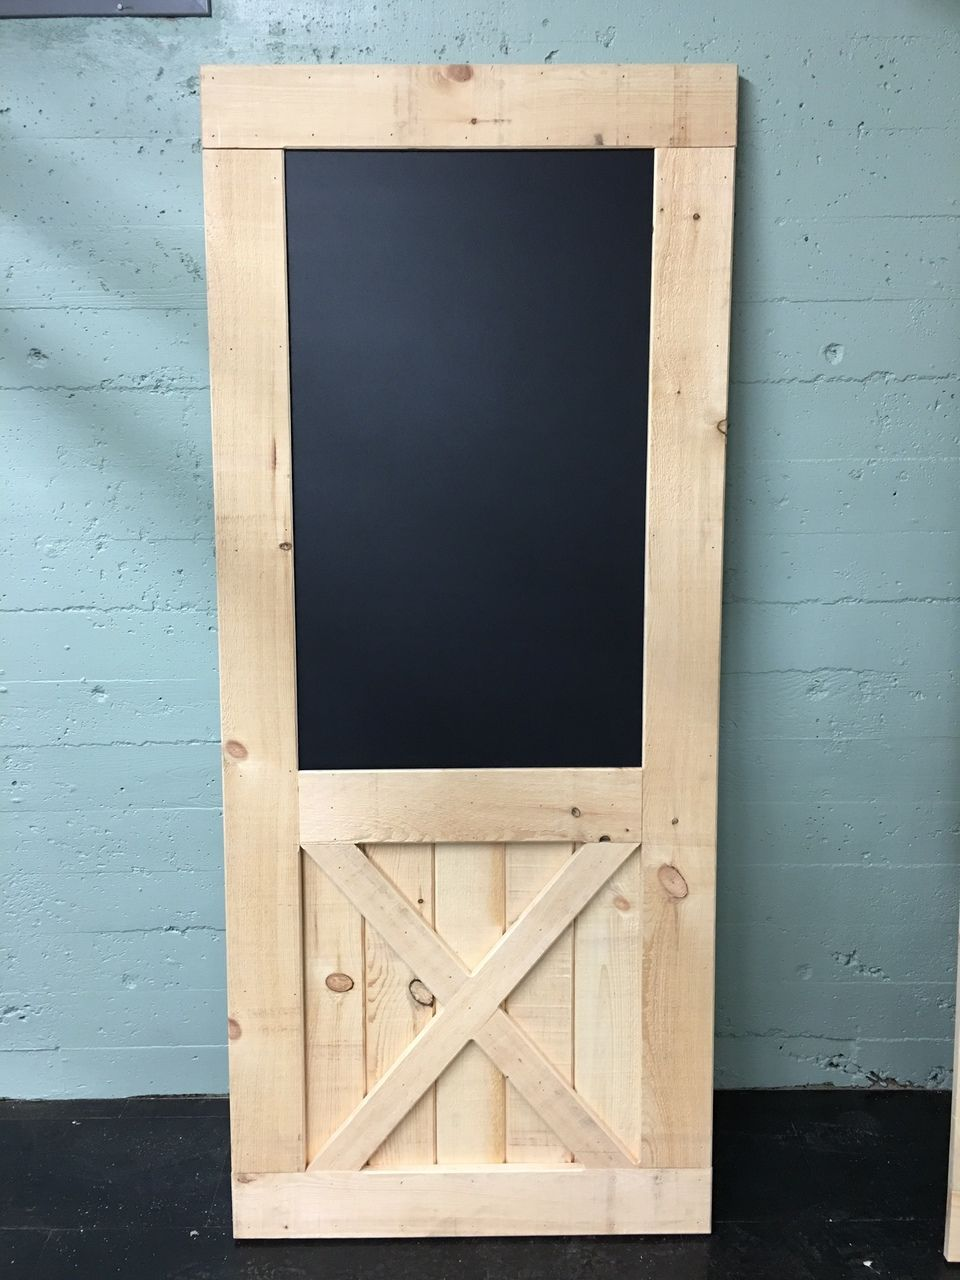 Bottom X Brace Barn Door With Built In Chalkboard Custom Build Made In Usa The Barn Door Hardware Store Barn Doors Sliding Barn Door Barn Door Pantry